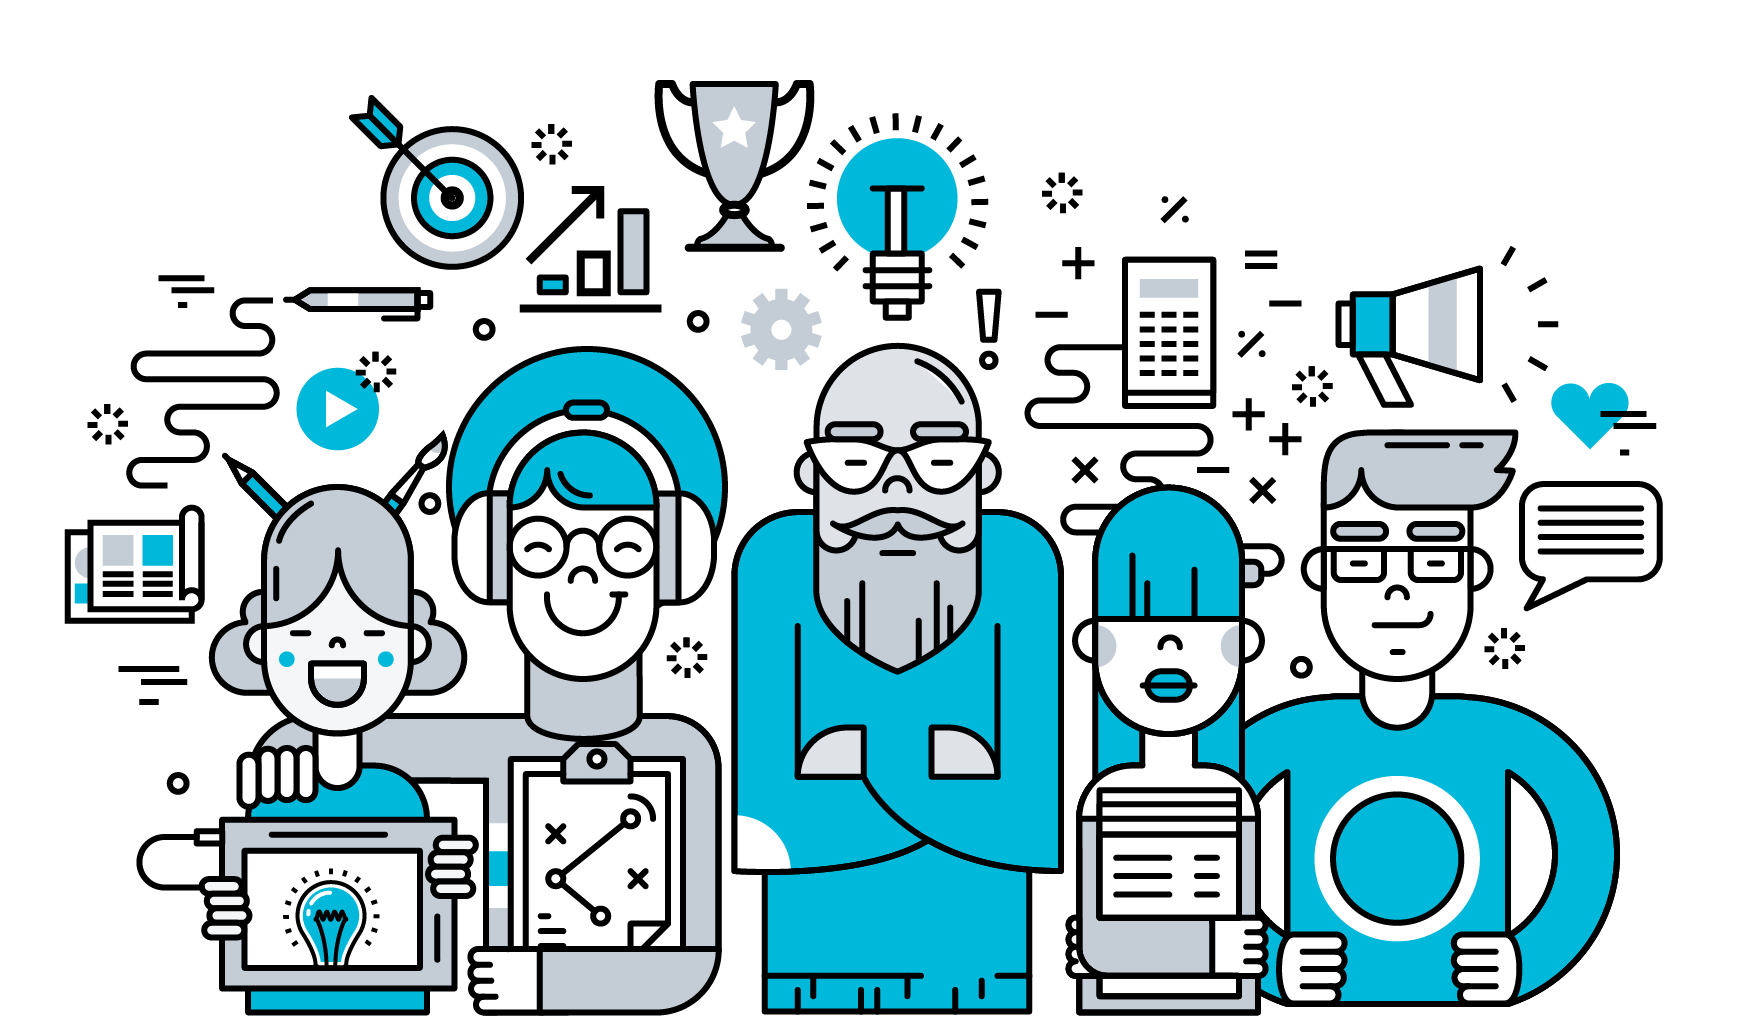 Illustration of five team members who have a variety of helpful tools available to use